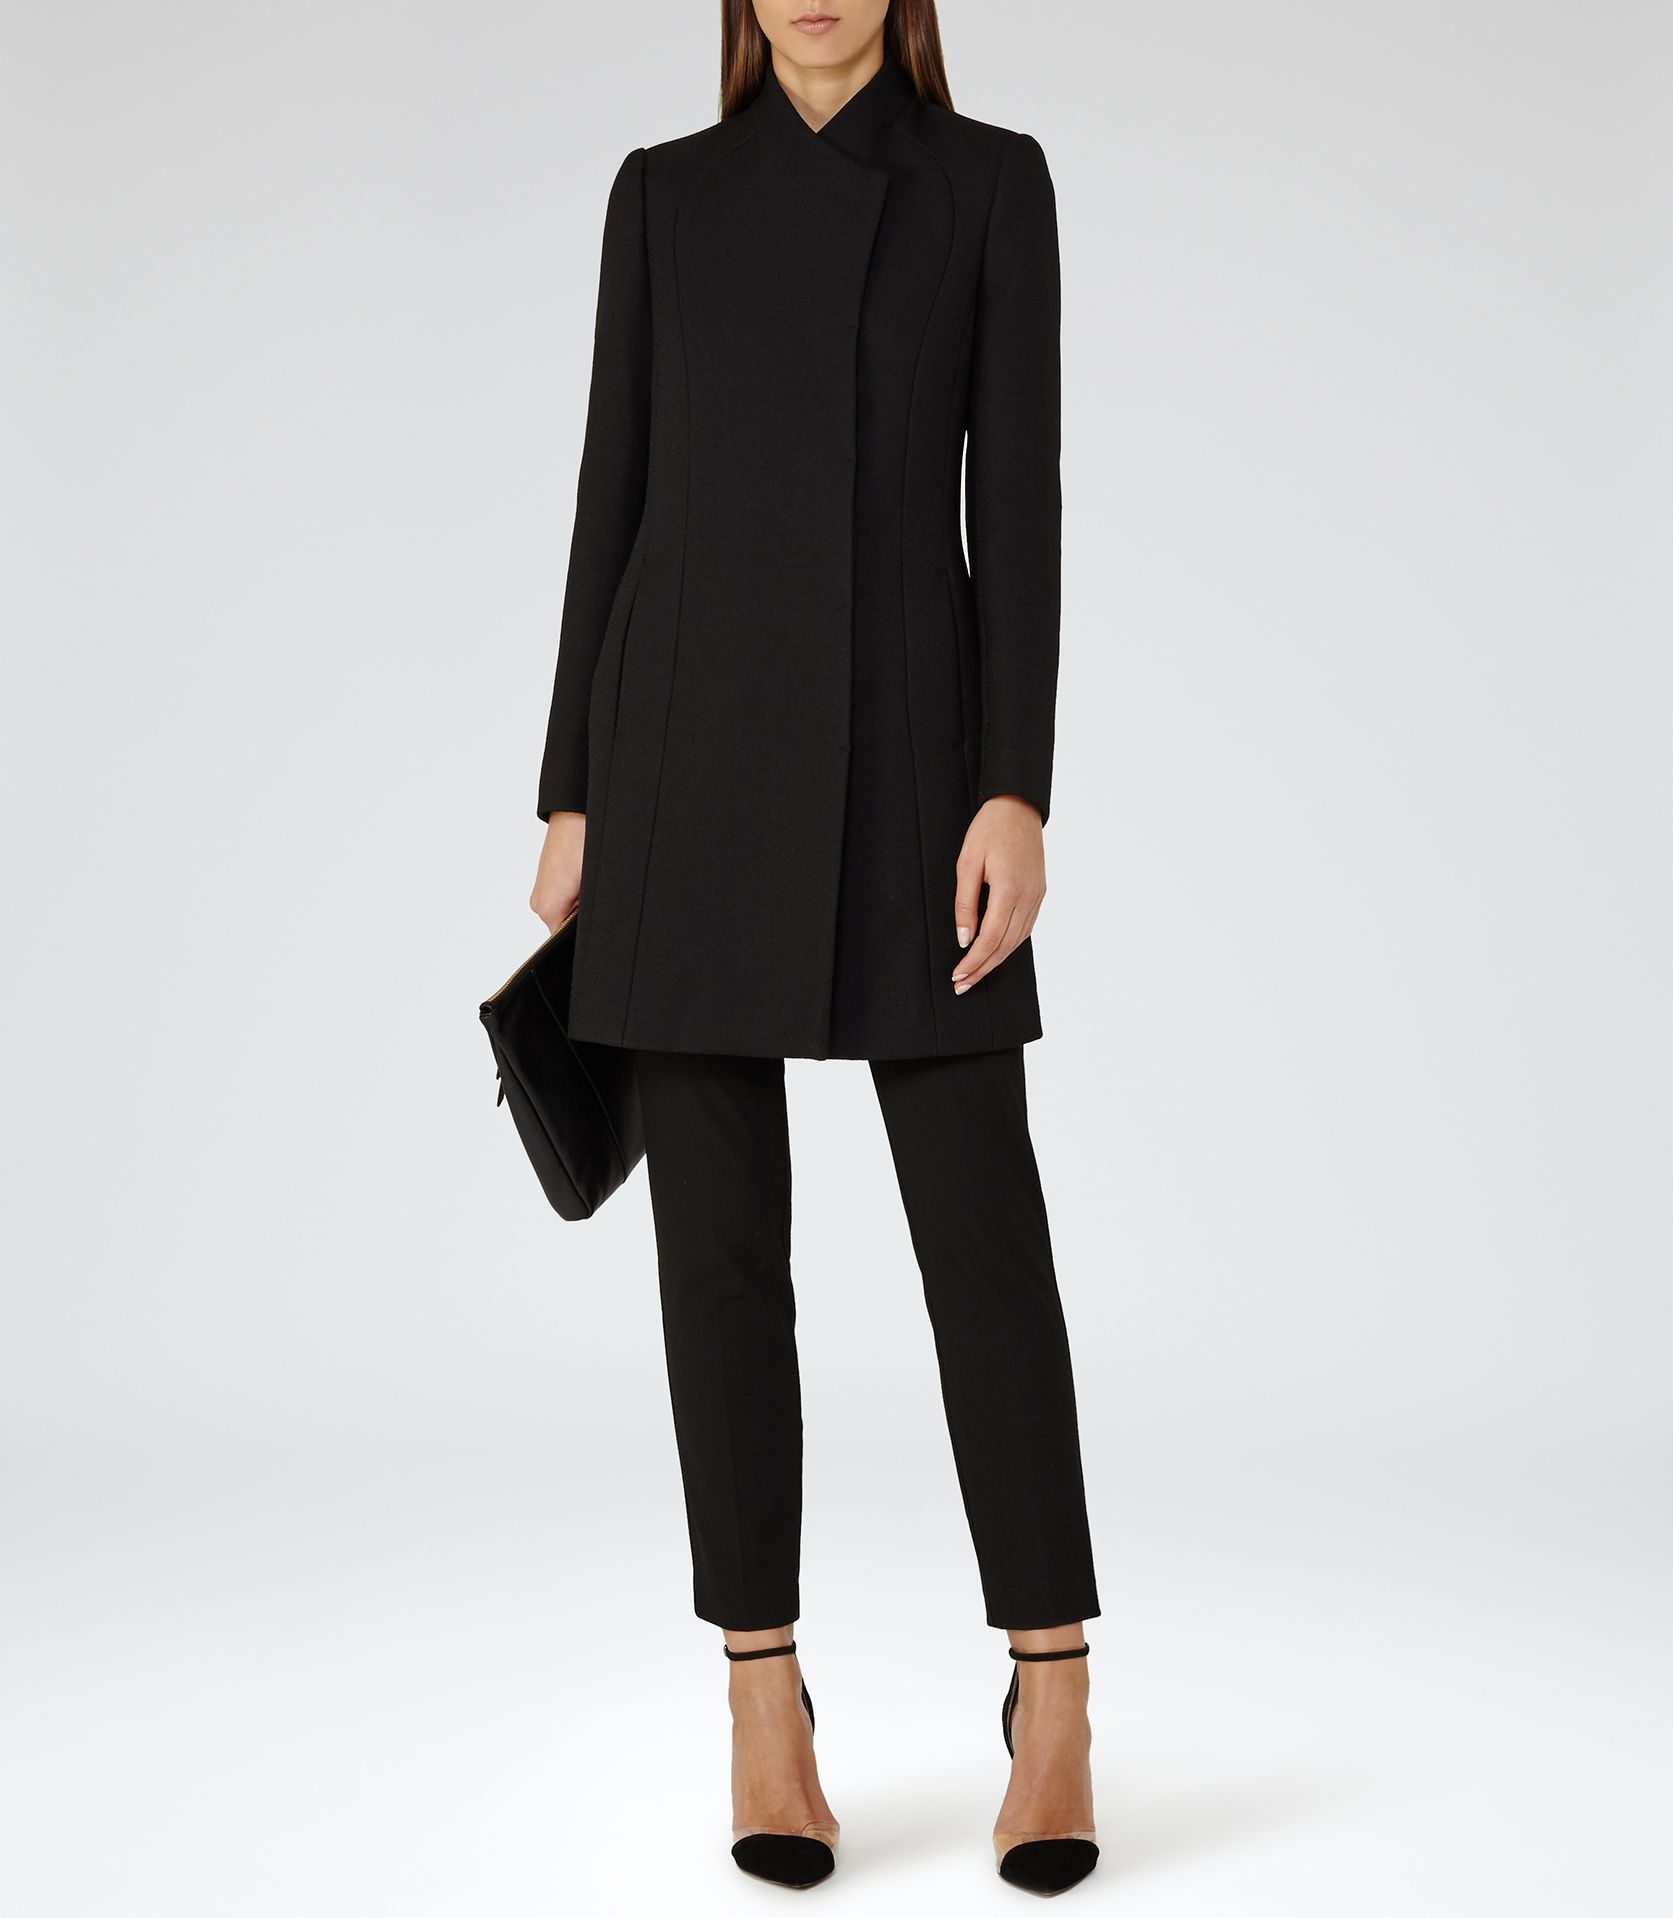 ed0b733cfc Womens Black High-neck Coat - Reiss Melania | Reiss coats | Fashion ...